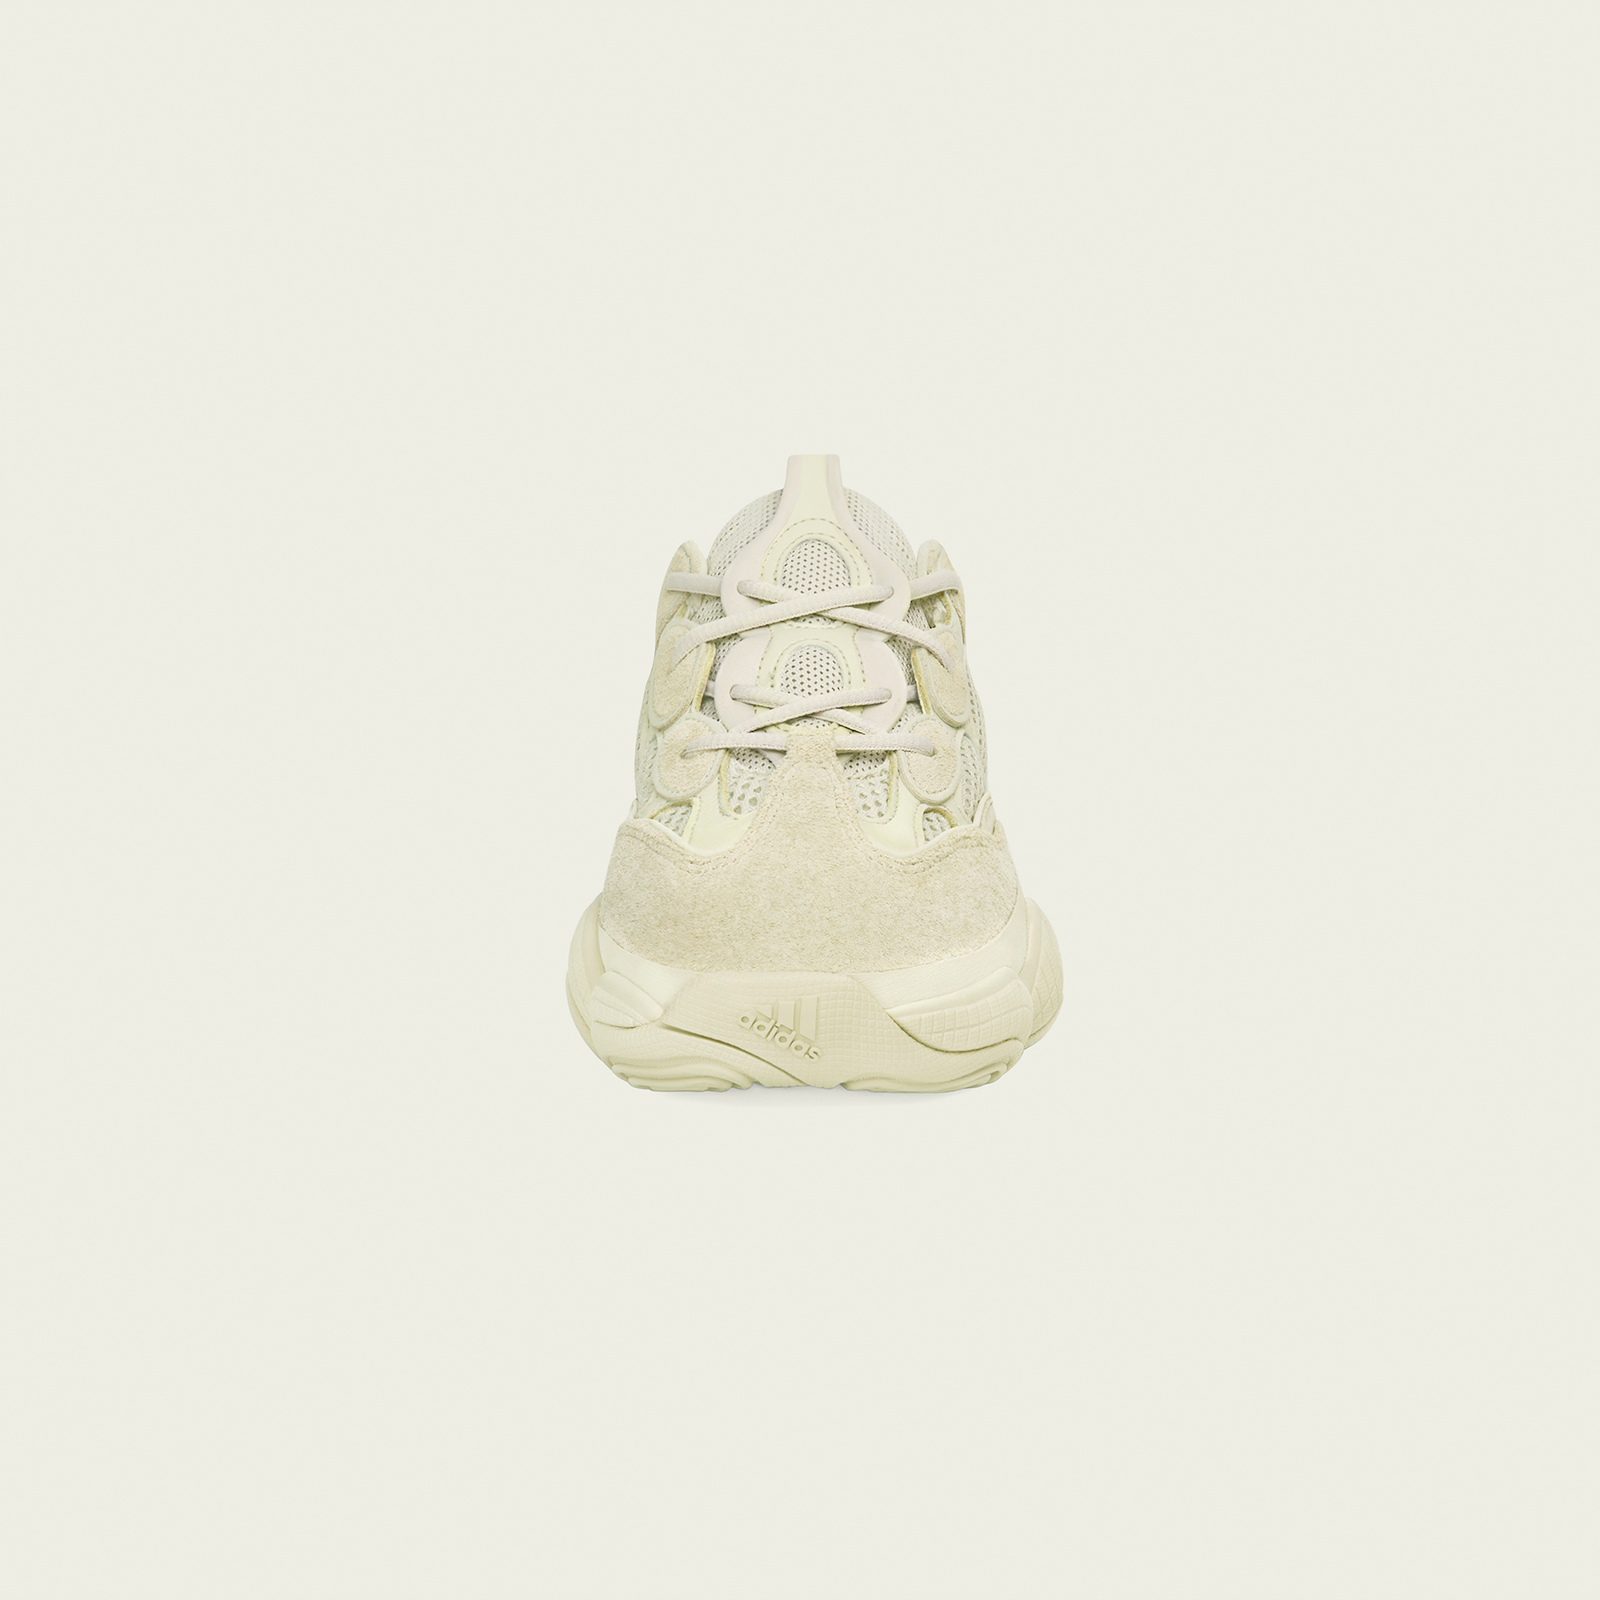 6e68fdc656804 adidas Yeezy 500 - Db2966 - Sneakersnstuff